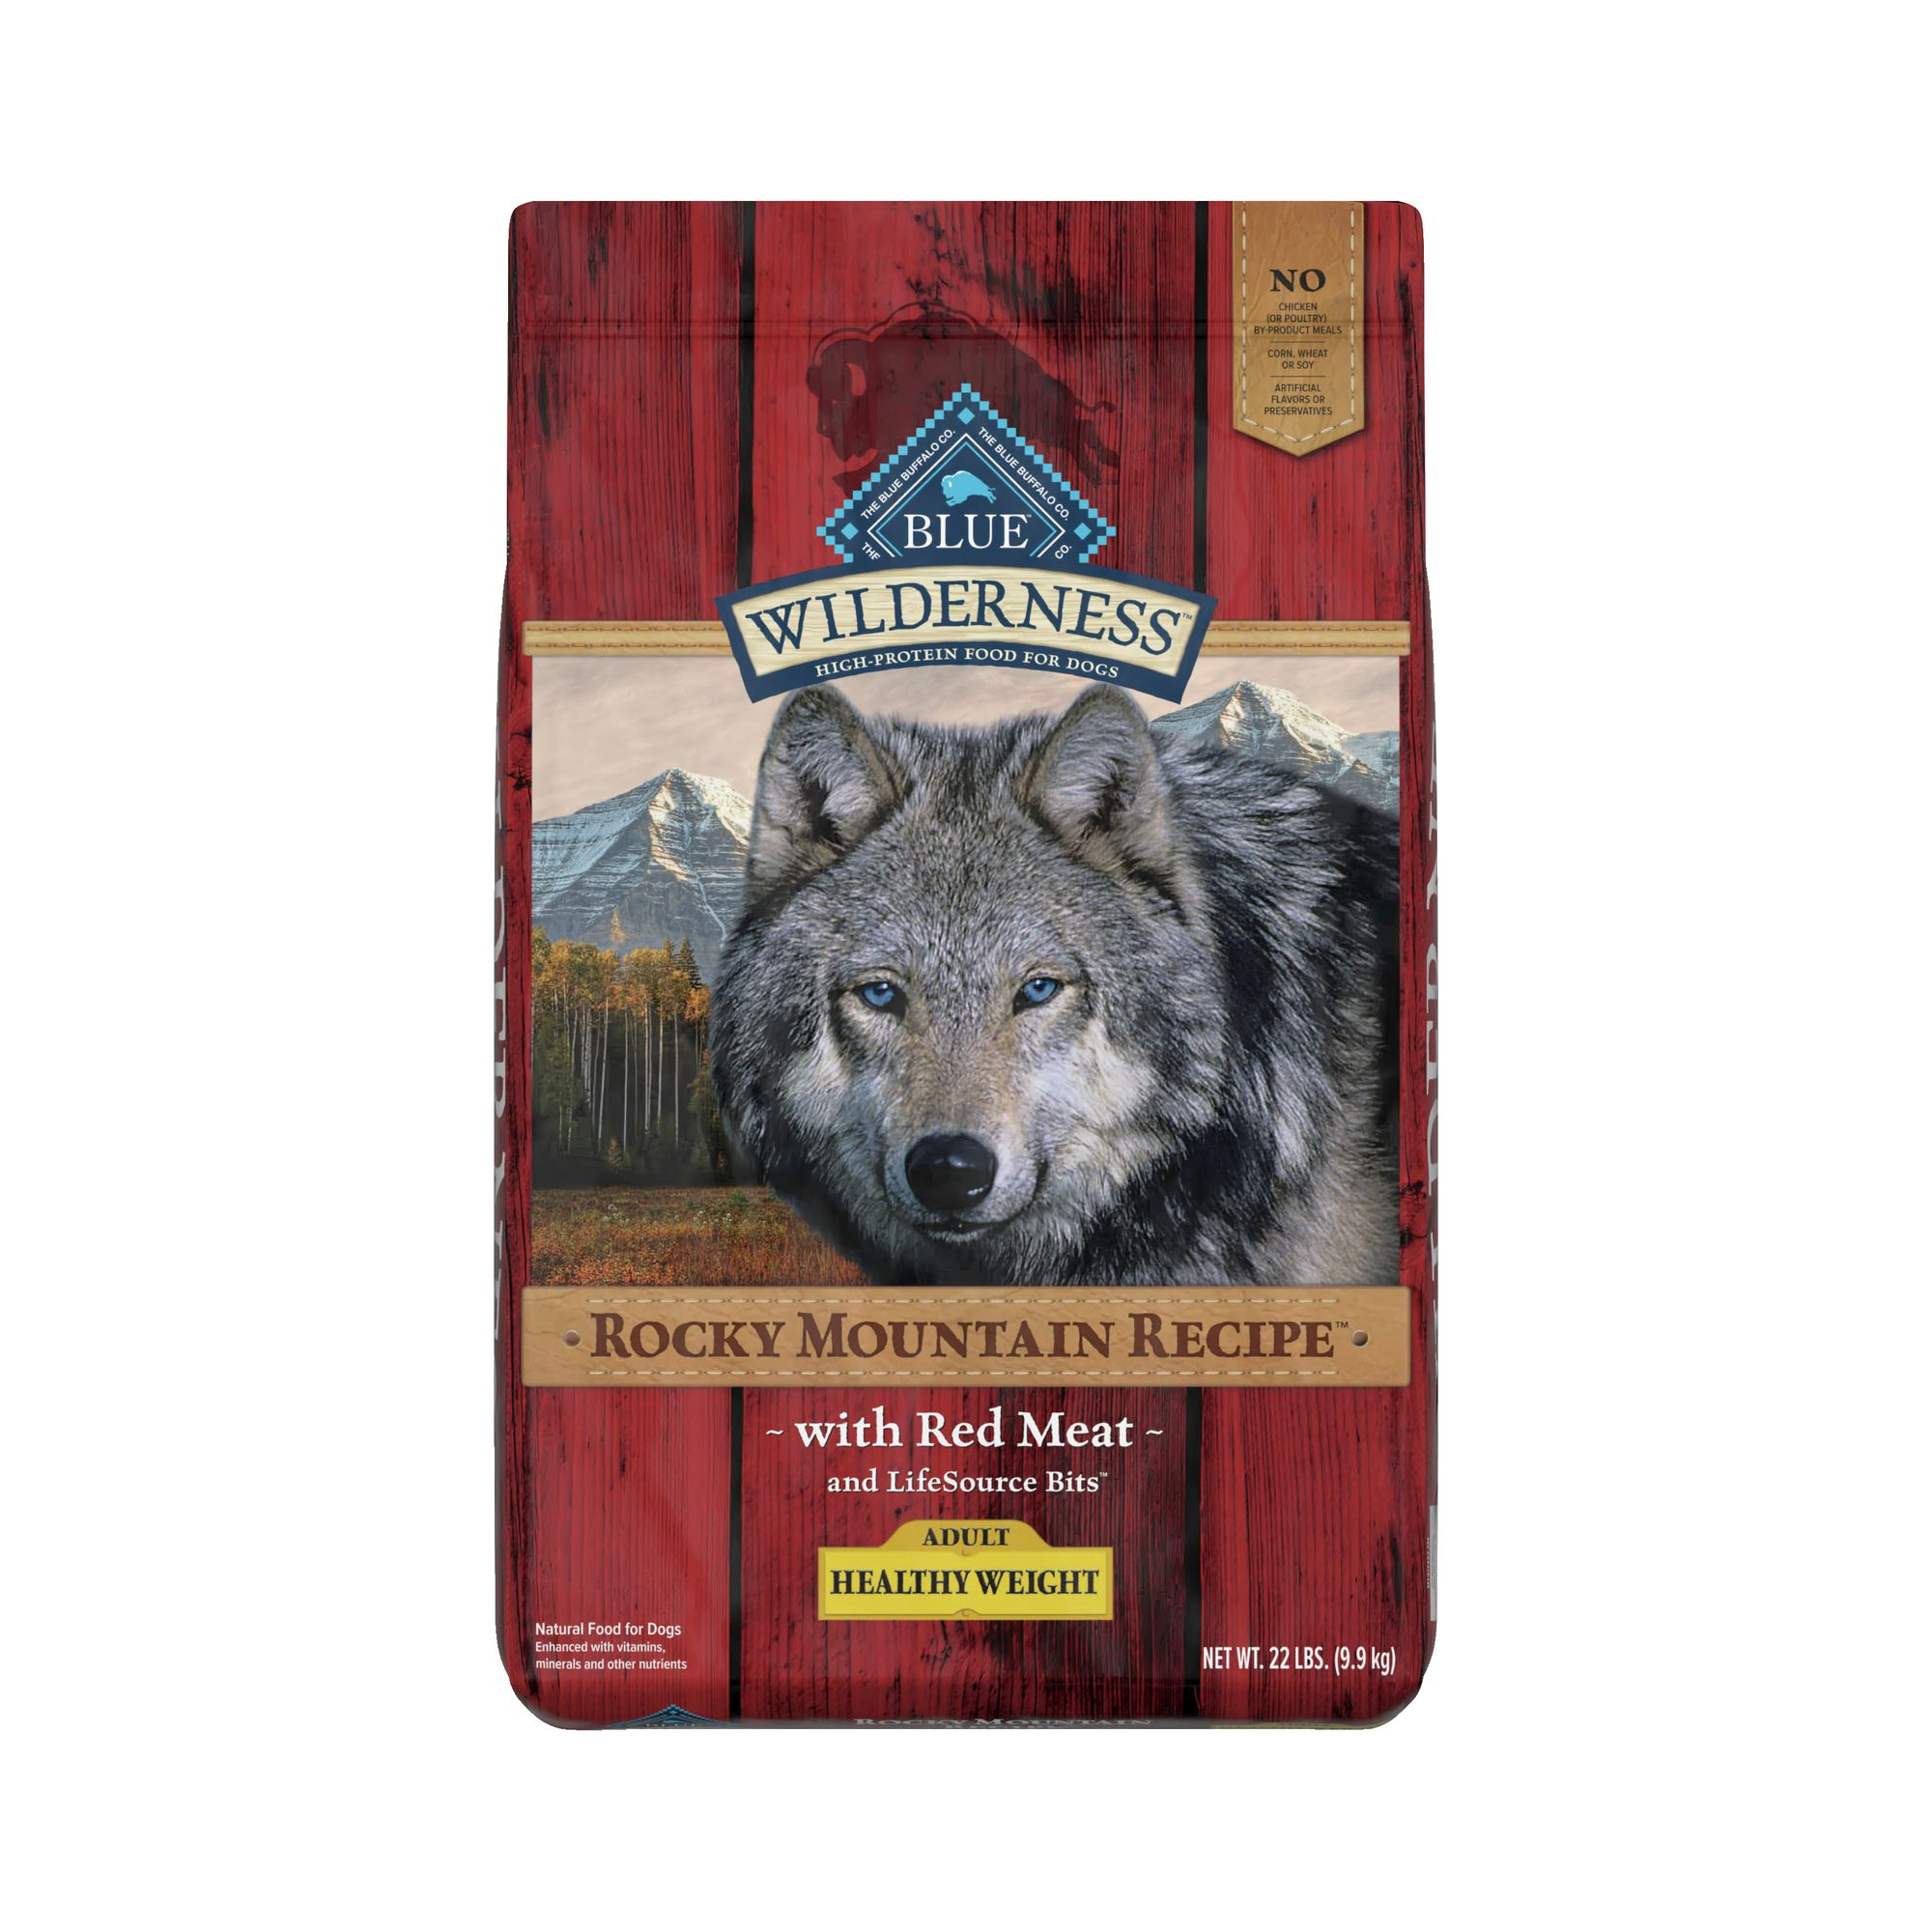 Blue Wilderness Rocky Mountain Recipe, Grain Free Healthy Weight Adult Dog Food size: 22 Lb, Blue Buffalo